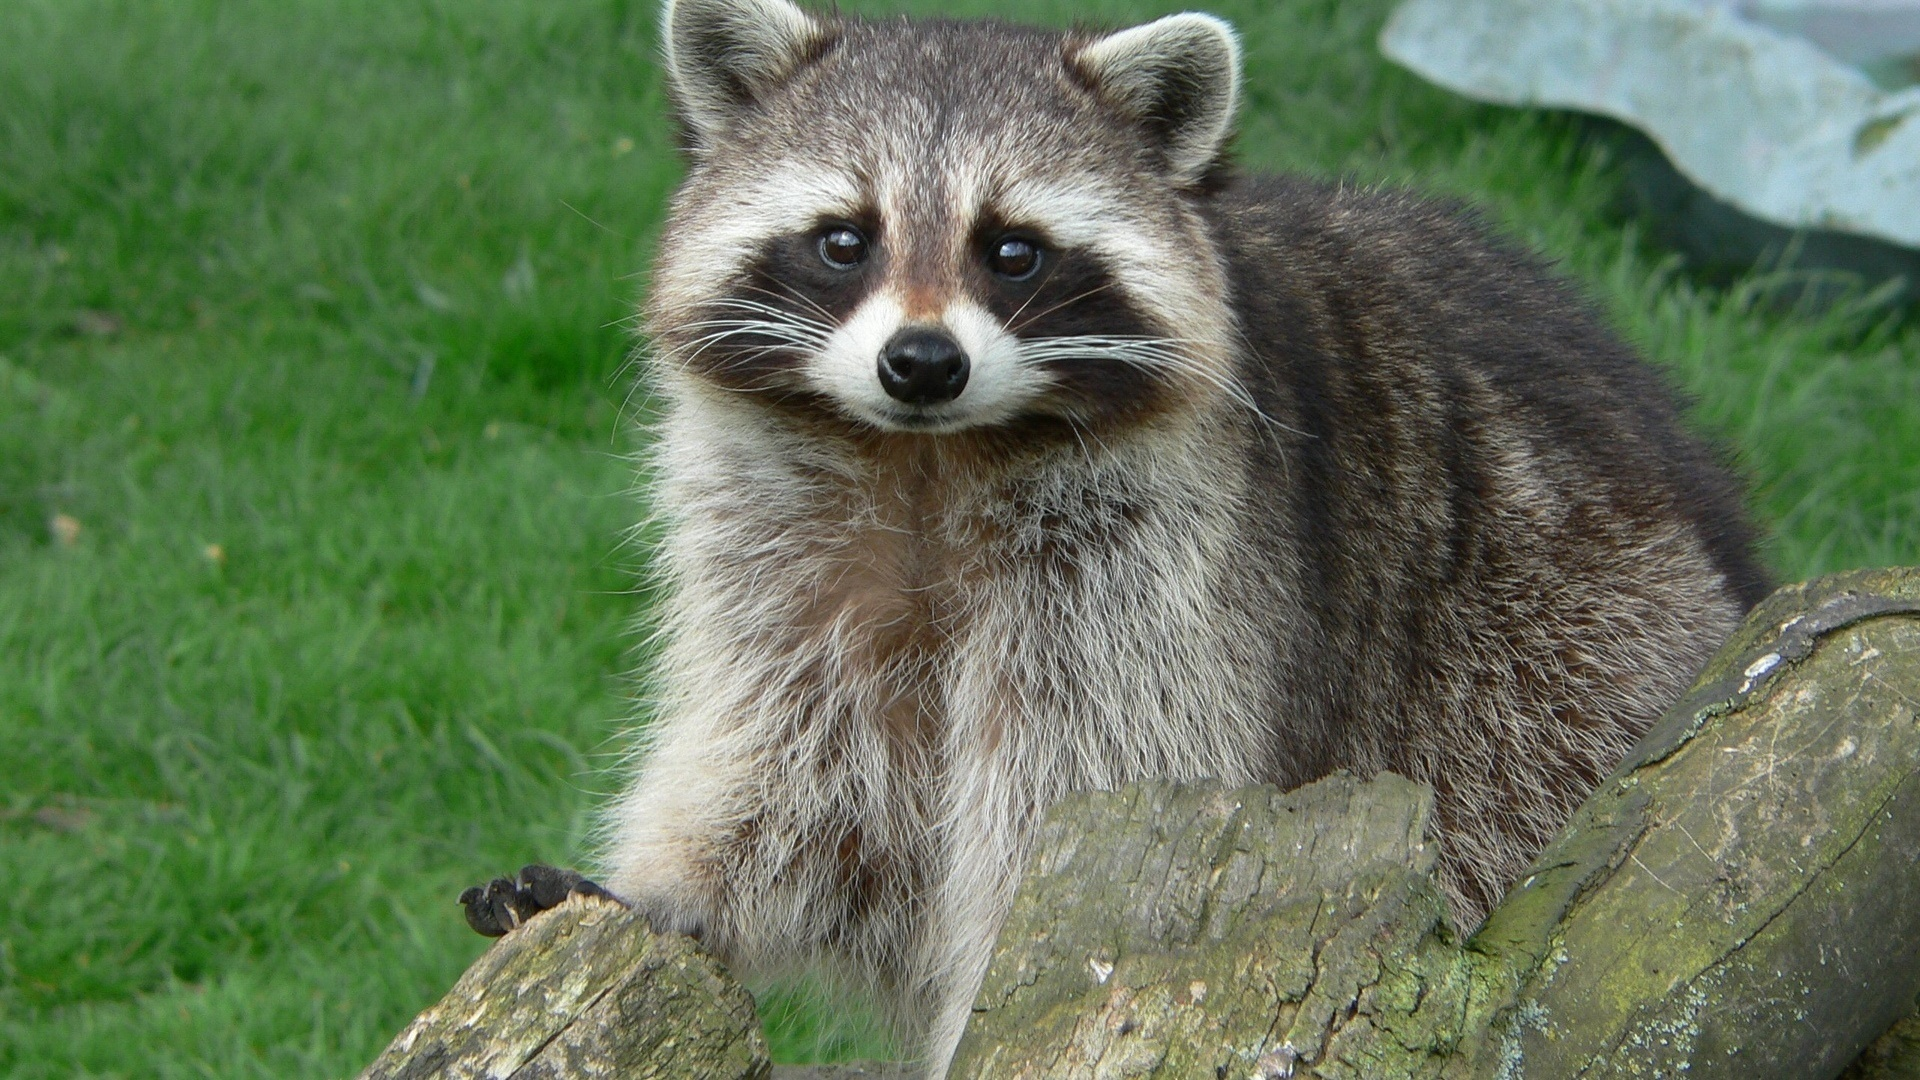 Wallpapers Raccoons Animals Raccoons Animals. Wallpapers Raccoons Animals